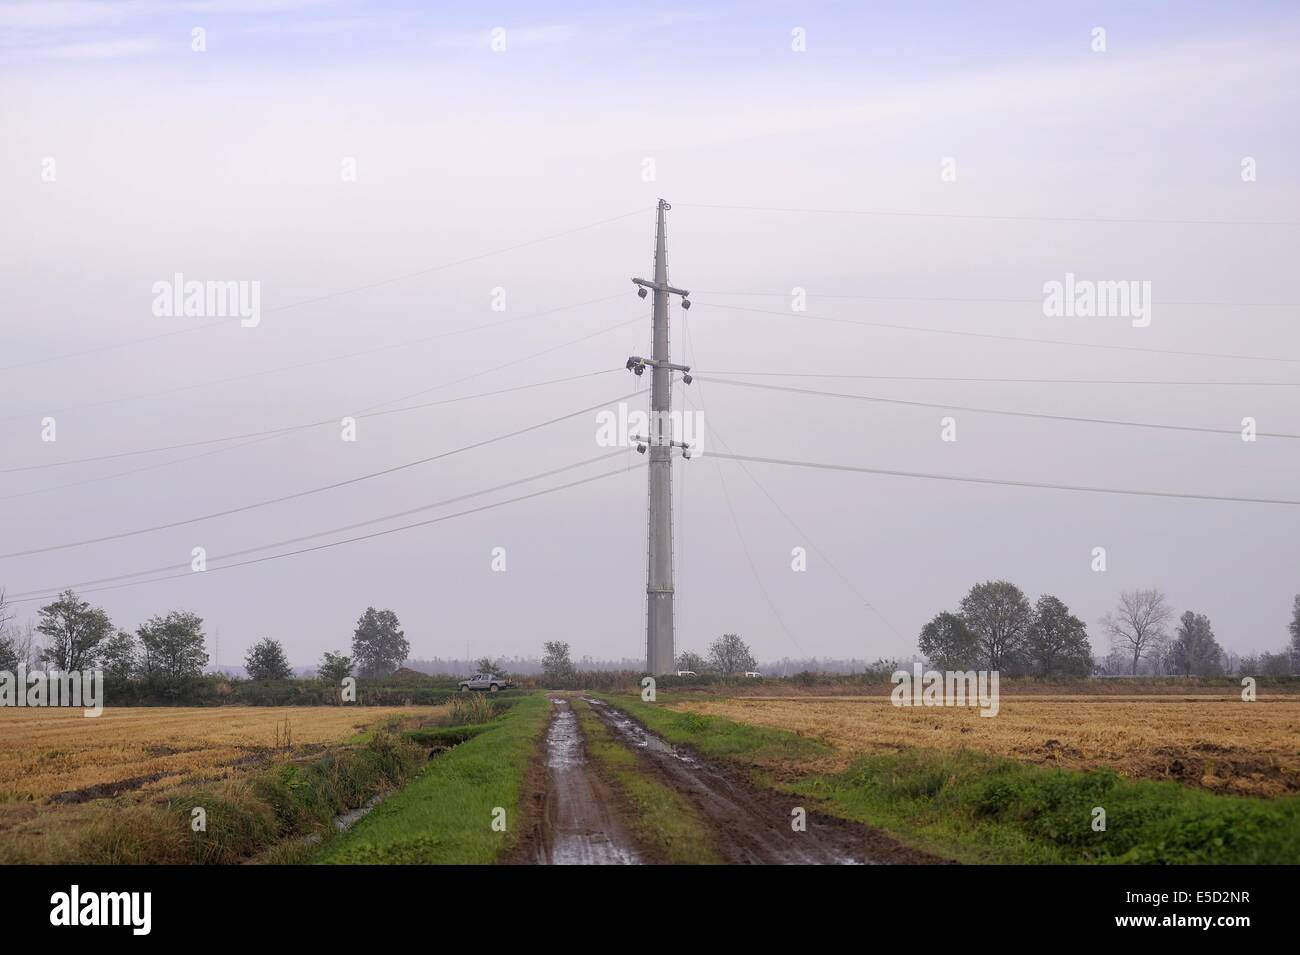 Italy, reconstruction of an high-voltage power line with low environmental and scenic impact pylons - Stock Image